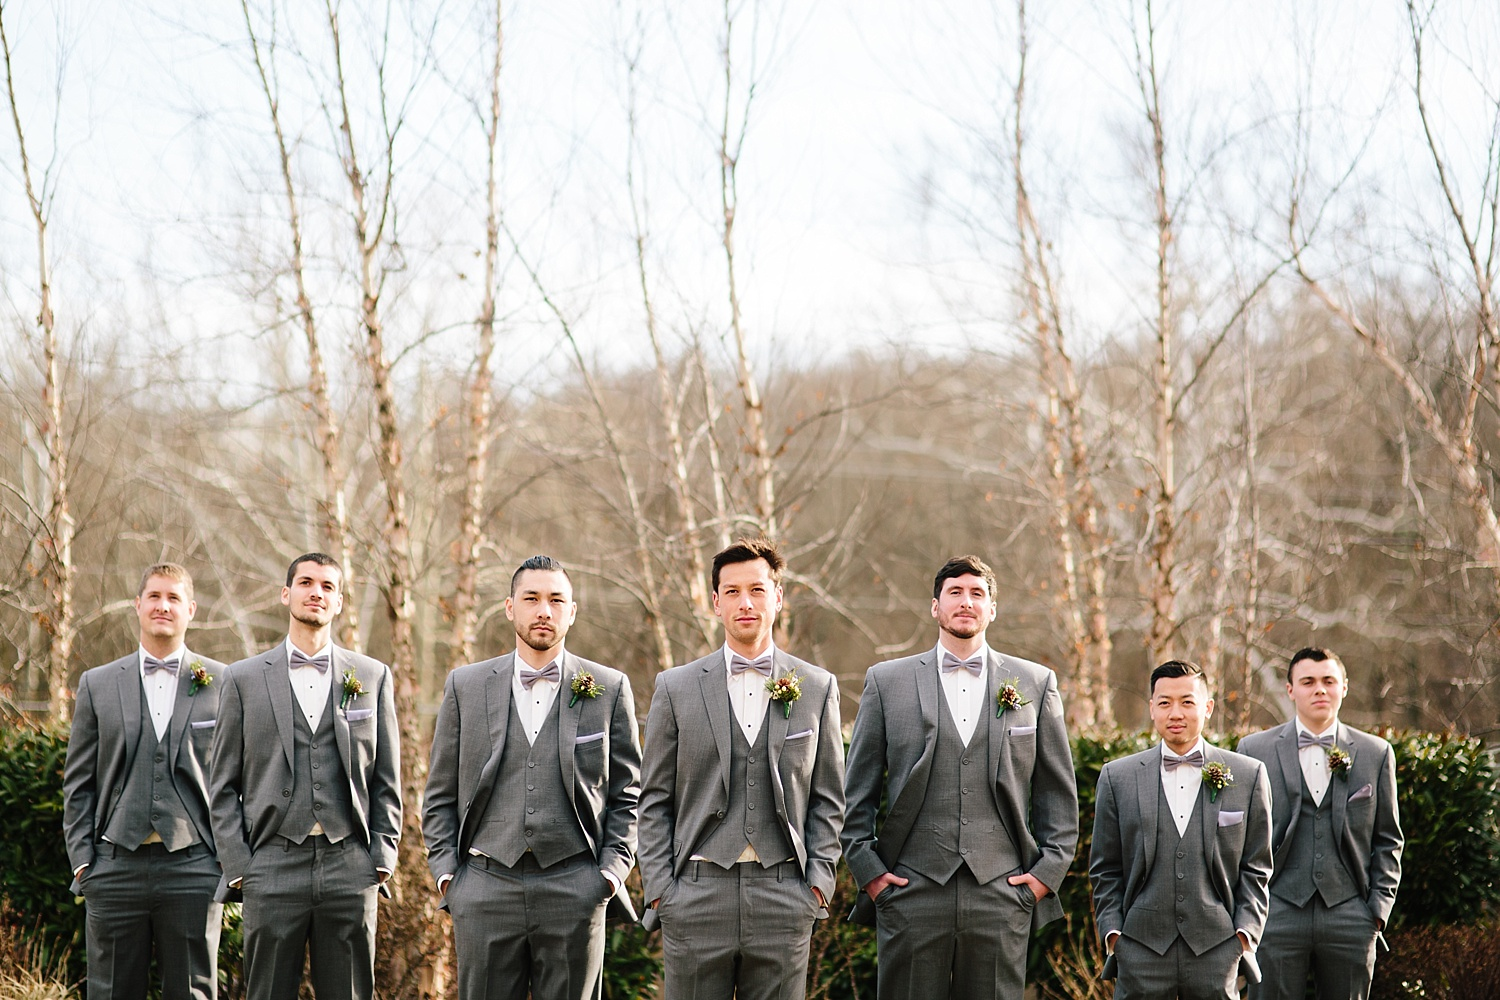 jessdavid_barnonbridge_phoenixville_winter_wedding_image_034.jpg